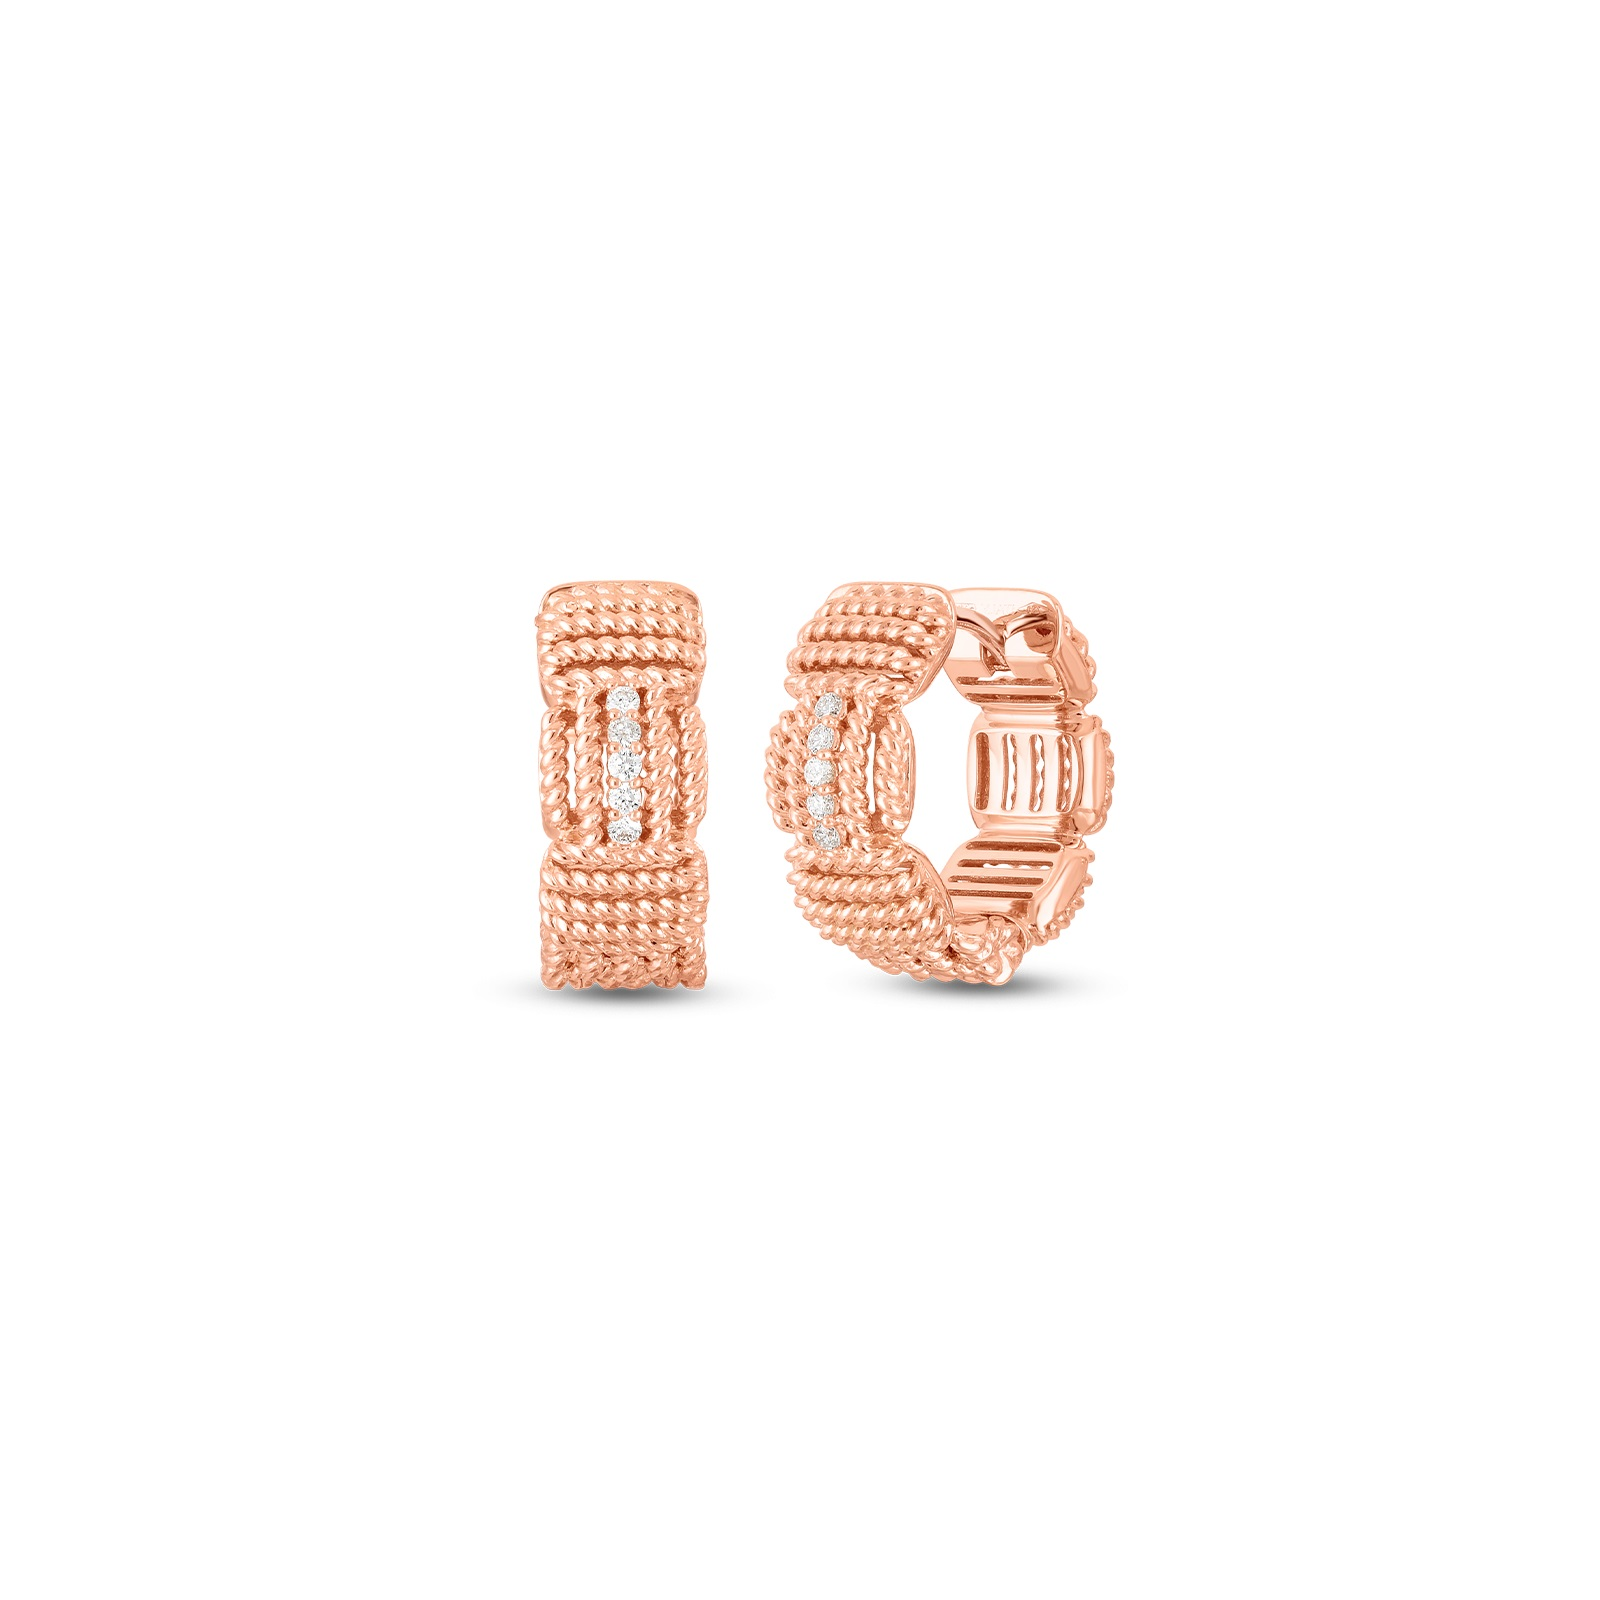 Roberto Coin 18K Rose Gold .07cts  Diamonds Gold Earrings with Stones 7772894AXERX